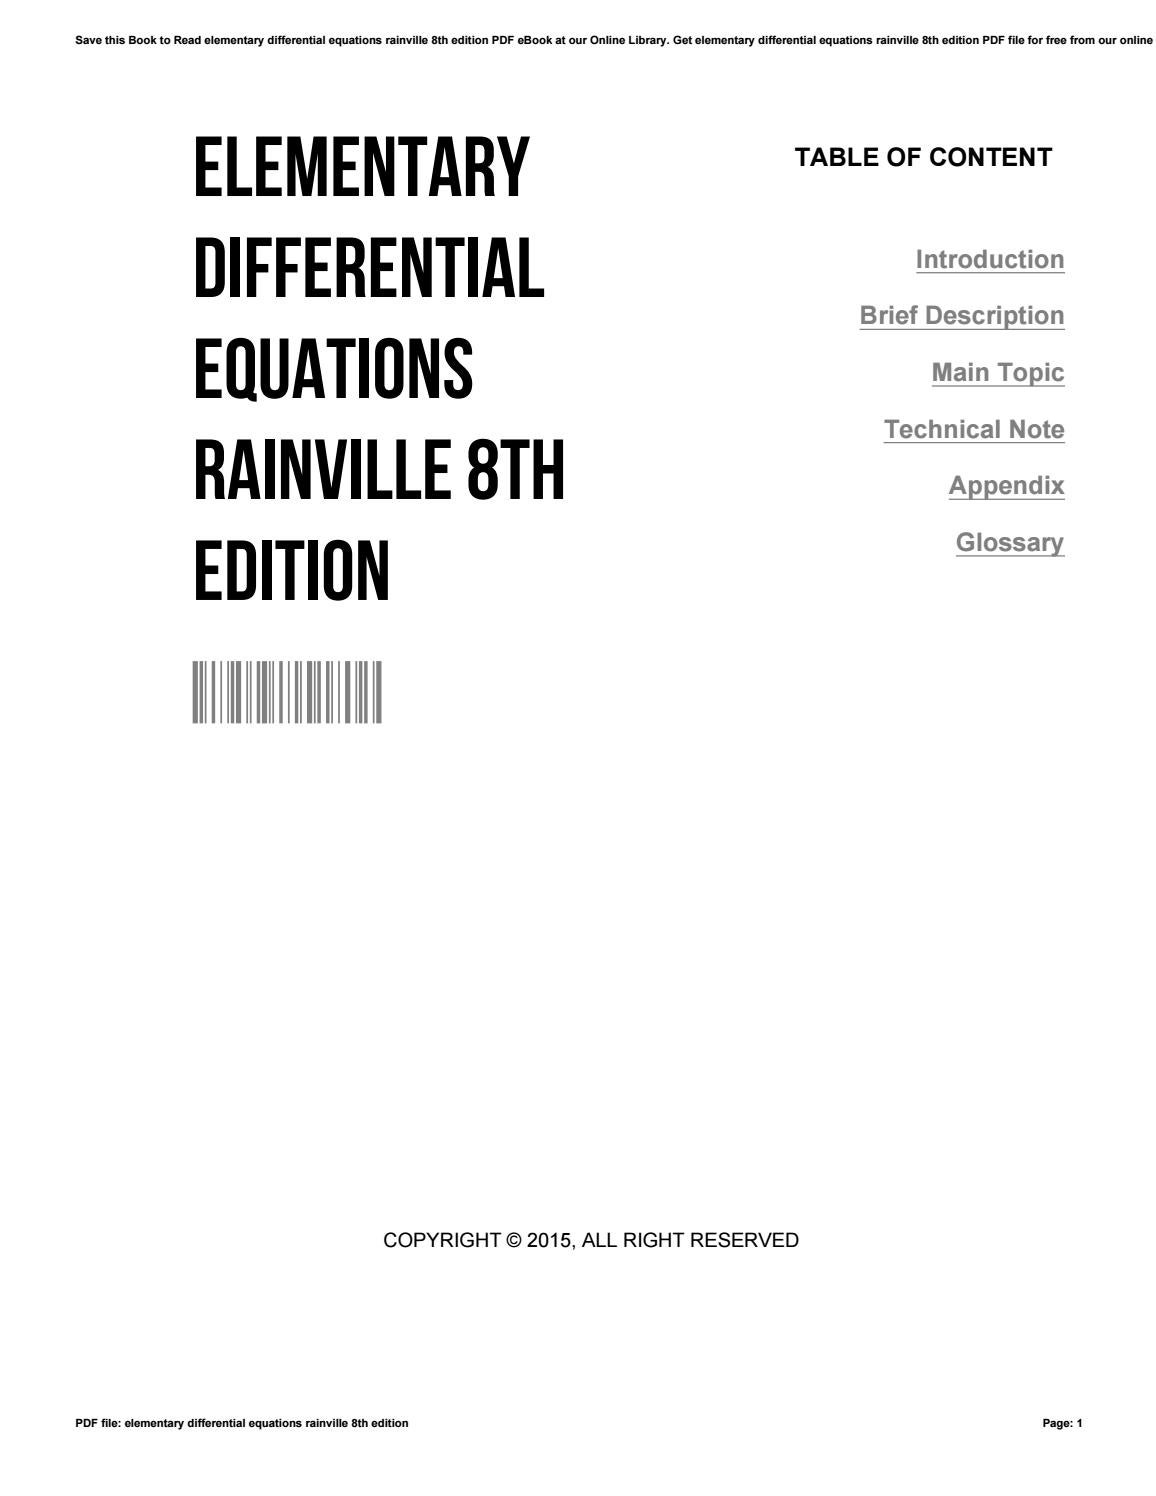 Elementary differential equations rainville 8th edition by